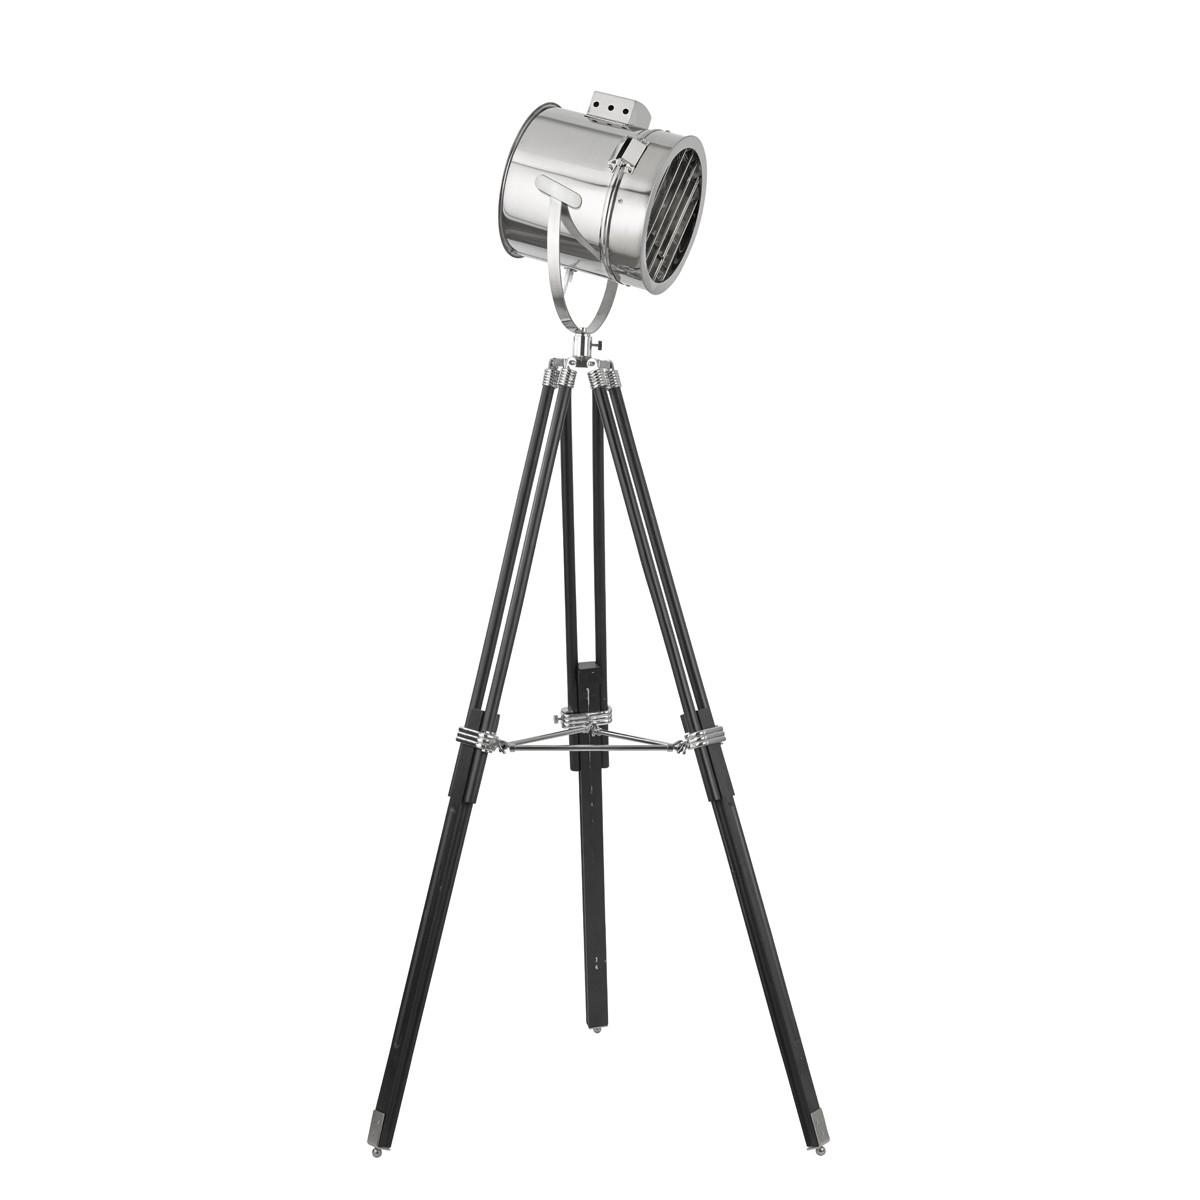 Stage light chrome floor lamp with stylish shade 5015 stanways stage light chrome floor lamp with stylish shade 5015 stanways stoves and lights mozeypictures Choice Image